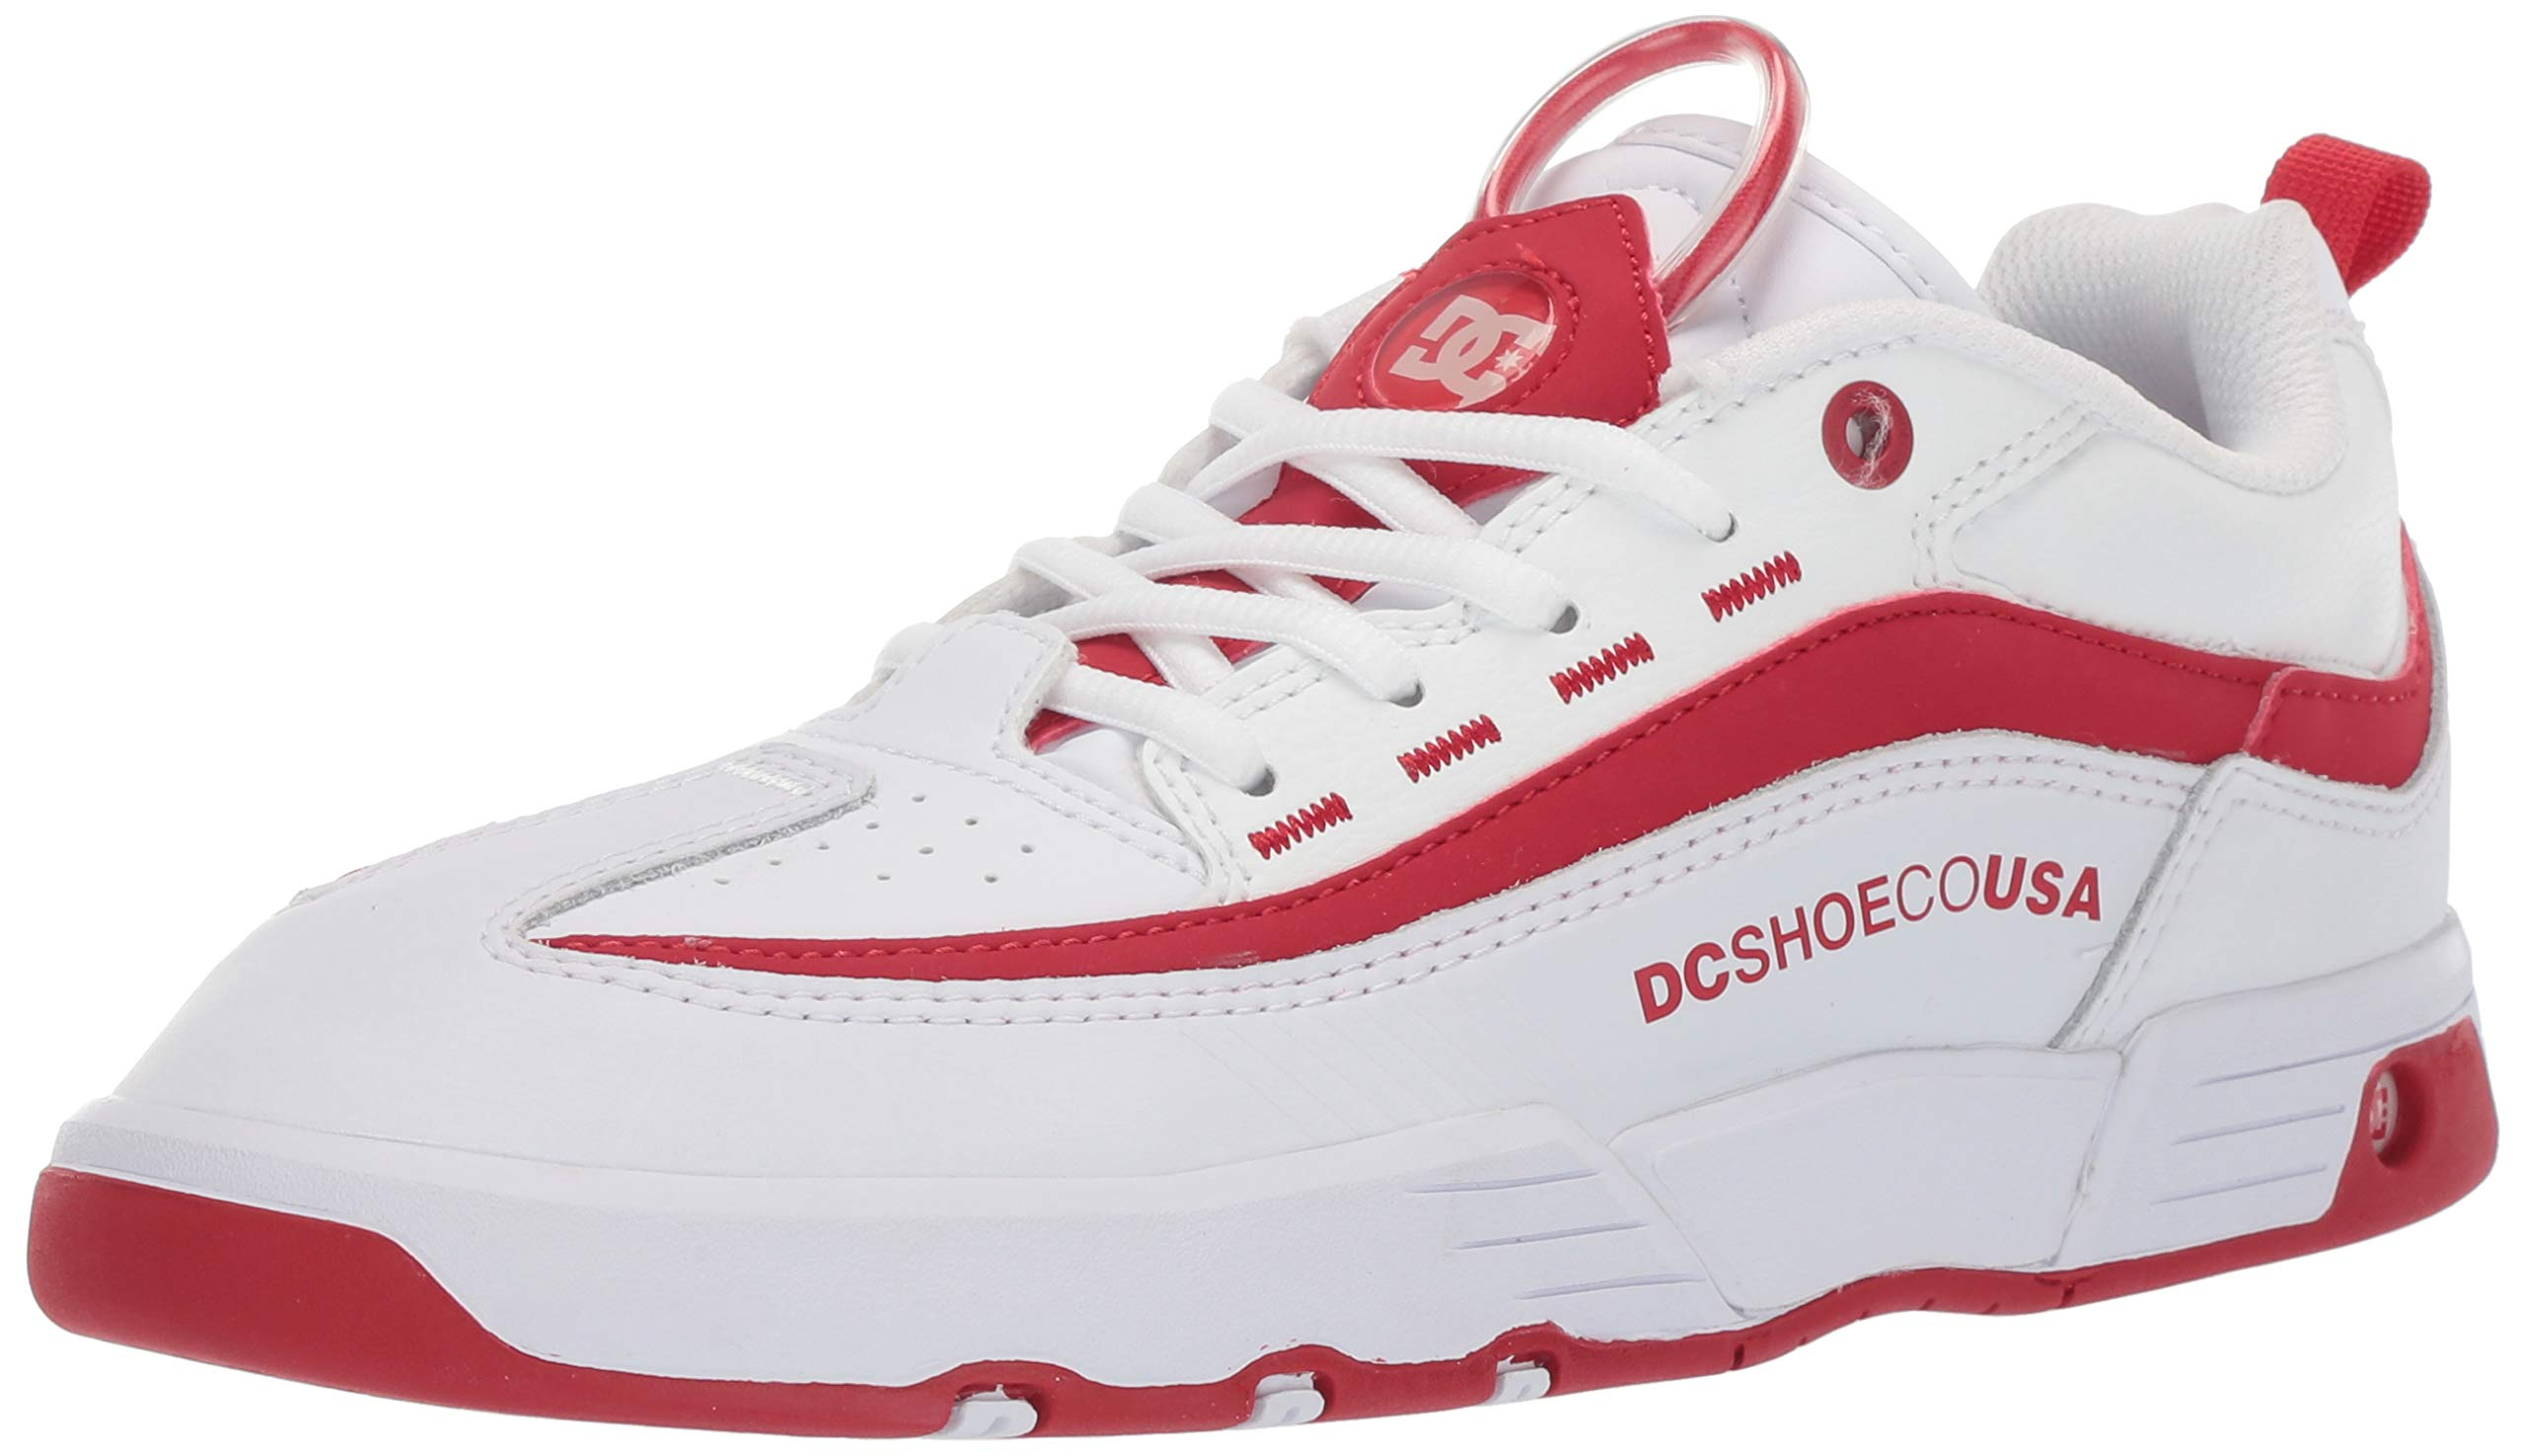 DC Women's Legacy 98 Slim Skate Shoe White/True red, 11 M US by DC